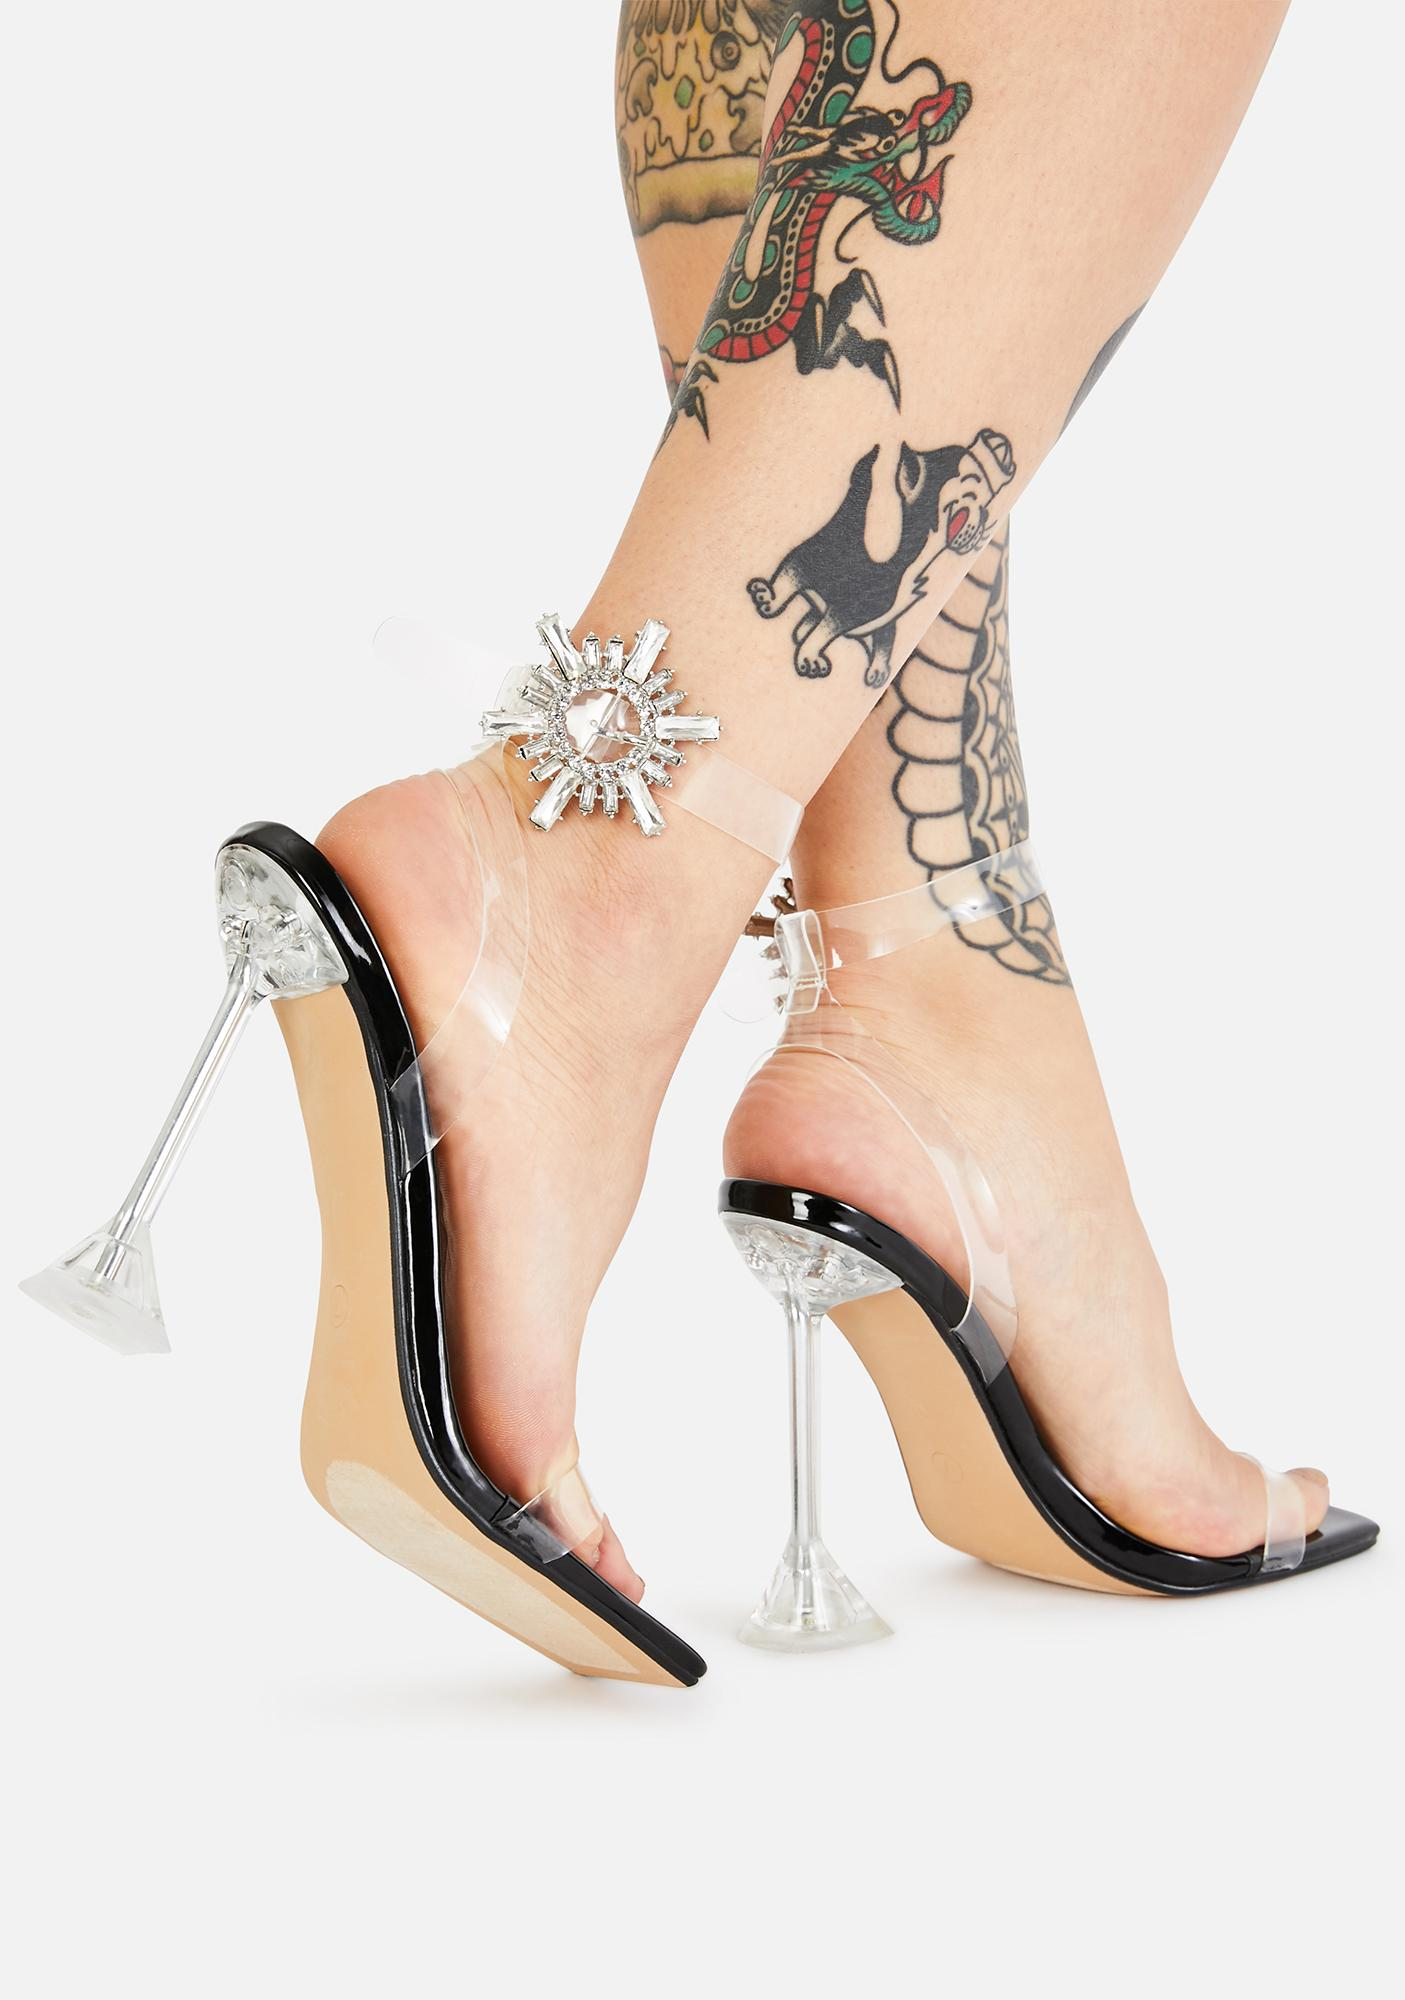 Prized Possession Clear Heels